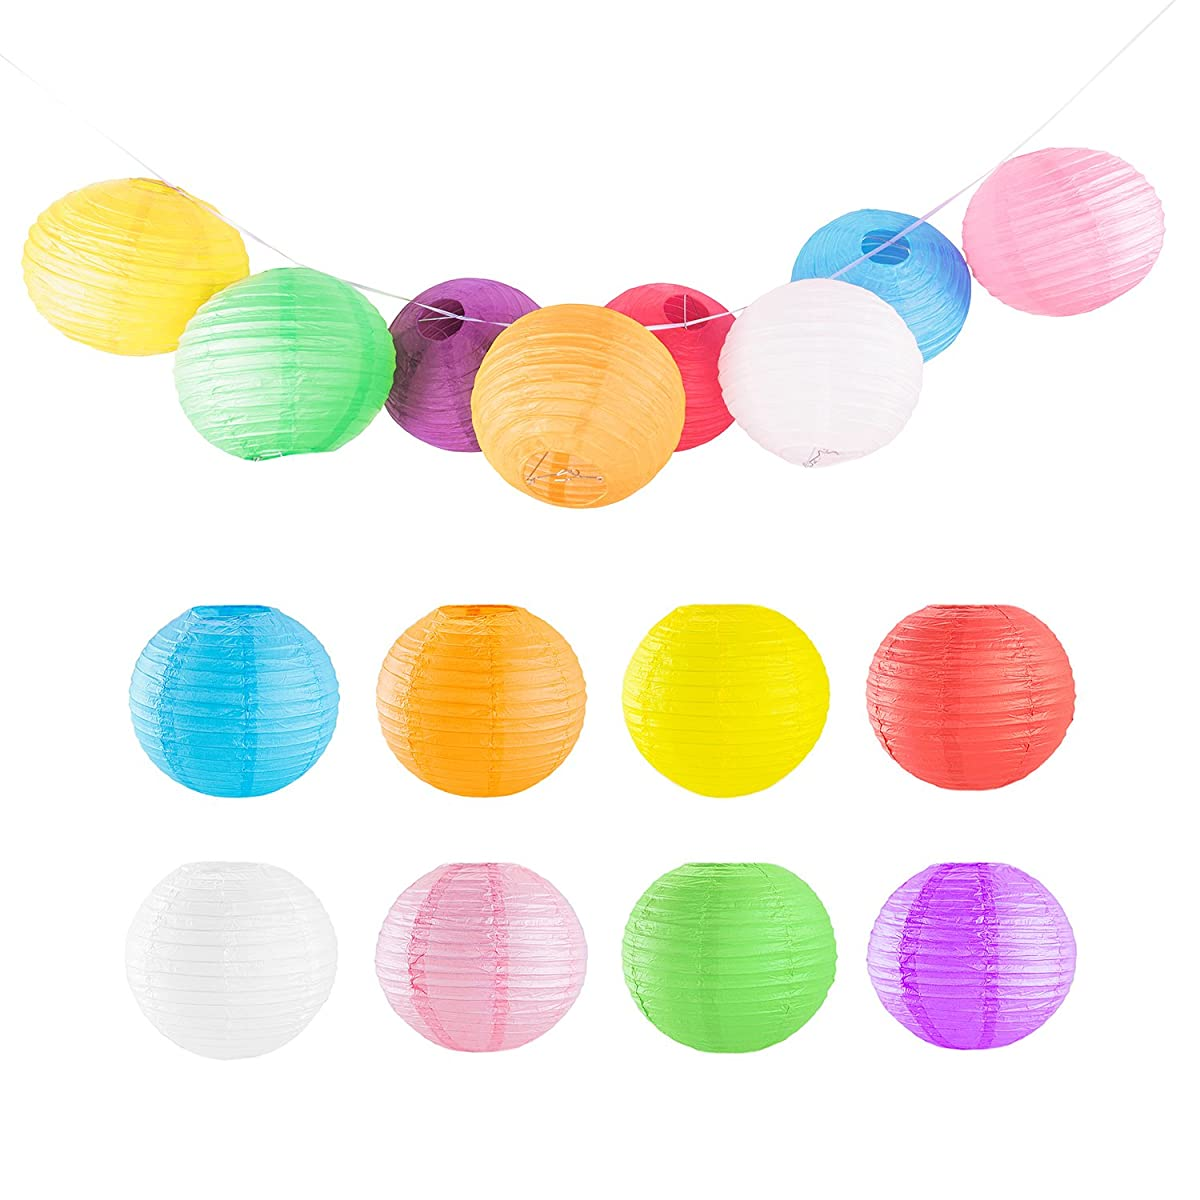 """10"""" Assorted Colorful Chinese/Japanese Hanging Paper Lanterns Metal Frame for Parties, Home Lamps, Event Decoration (8 Pack)"""